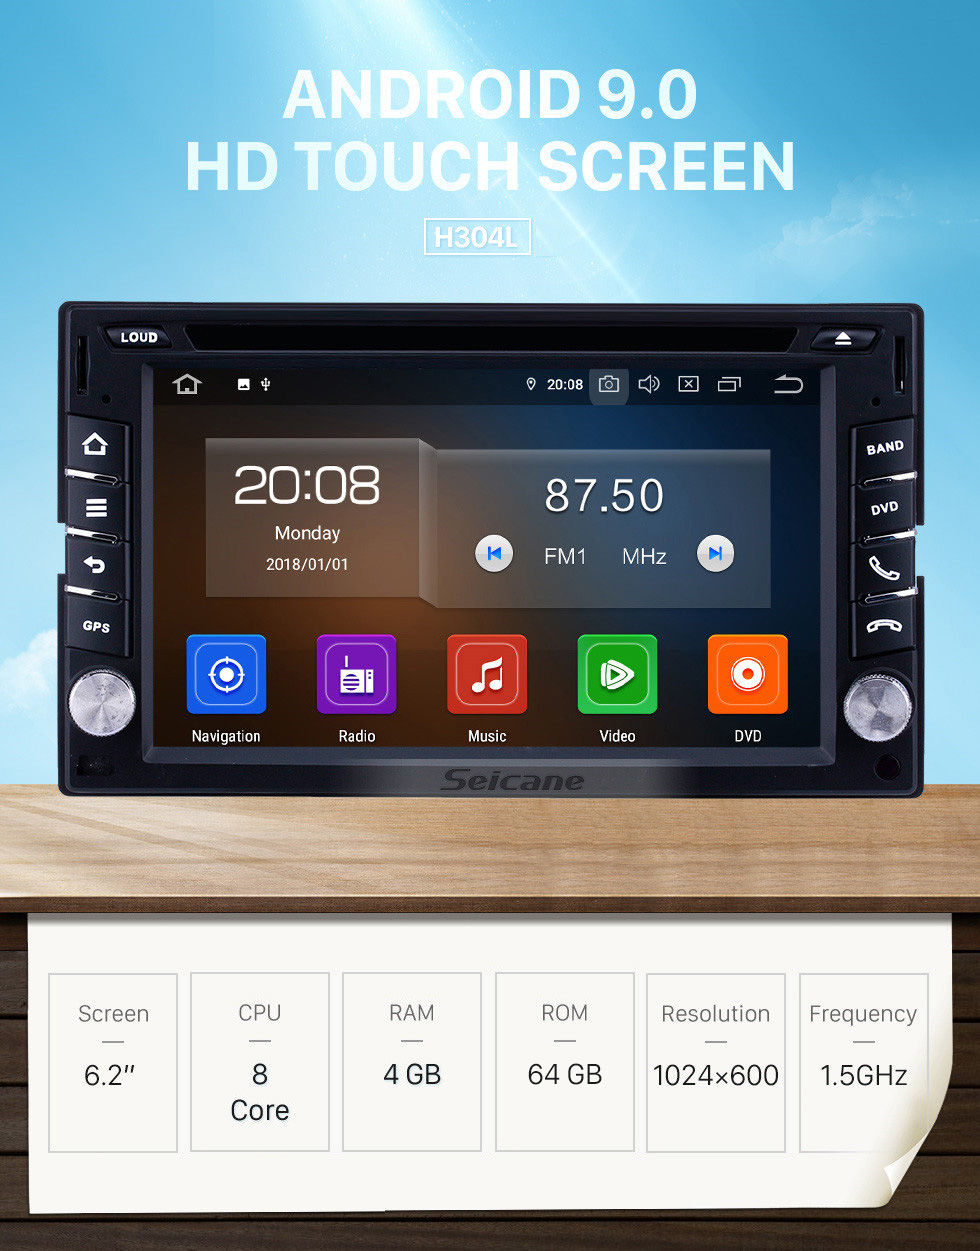 Seicane 6.2 inch Android 9.0 Universal Radio Bluetooth AUX HD Touchscreen WIFI GPS Navigation Carplay USB support TPMS DVR